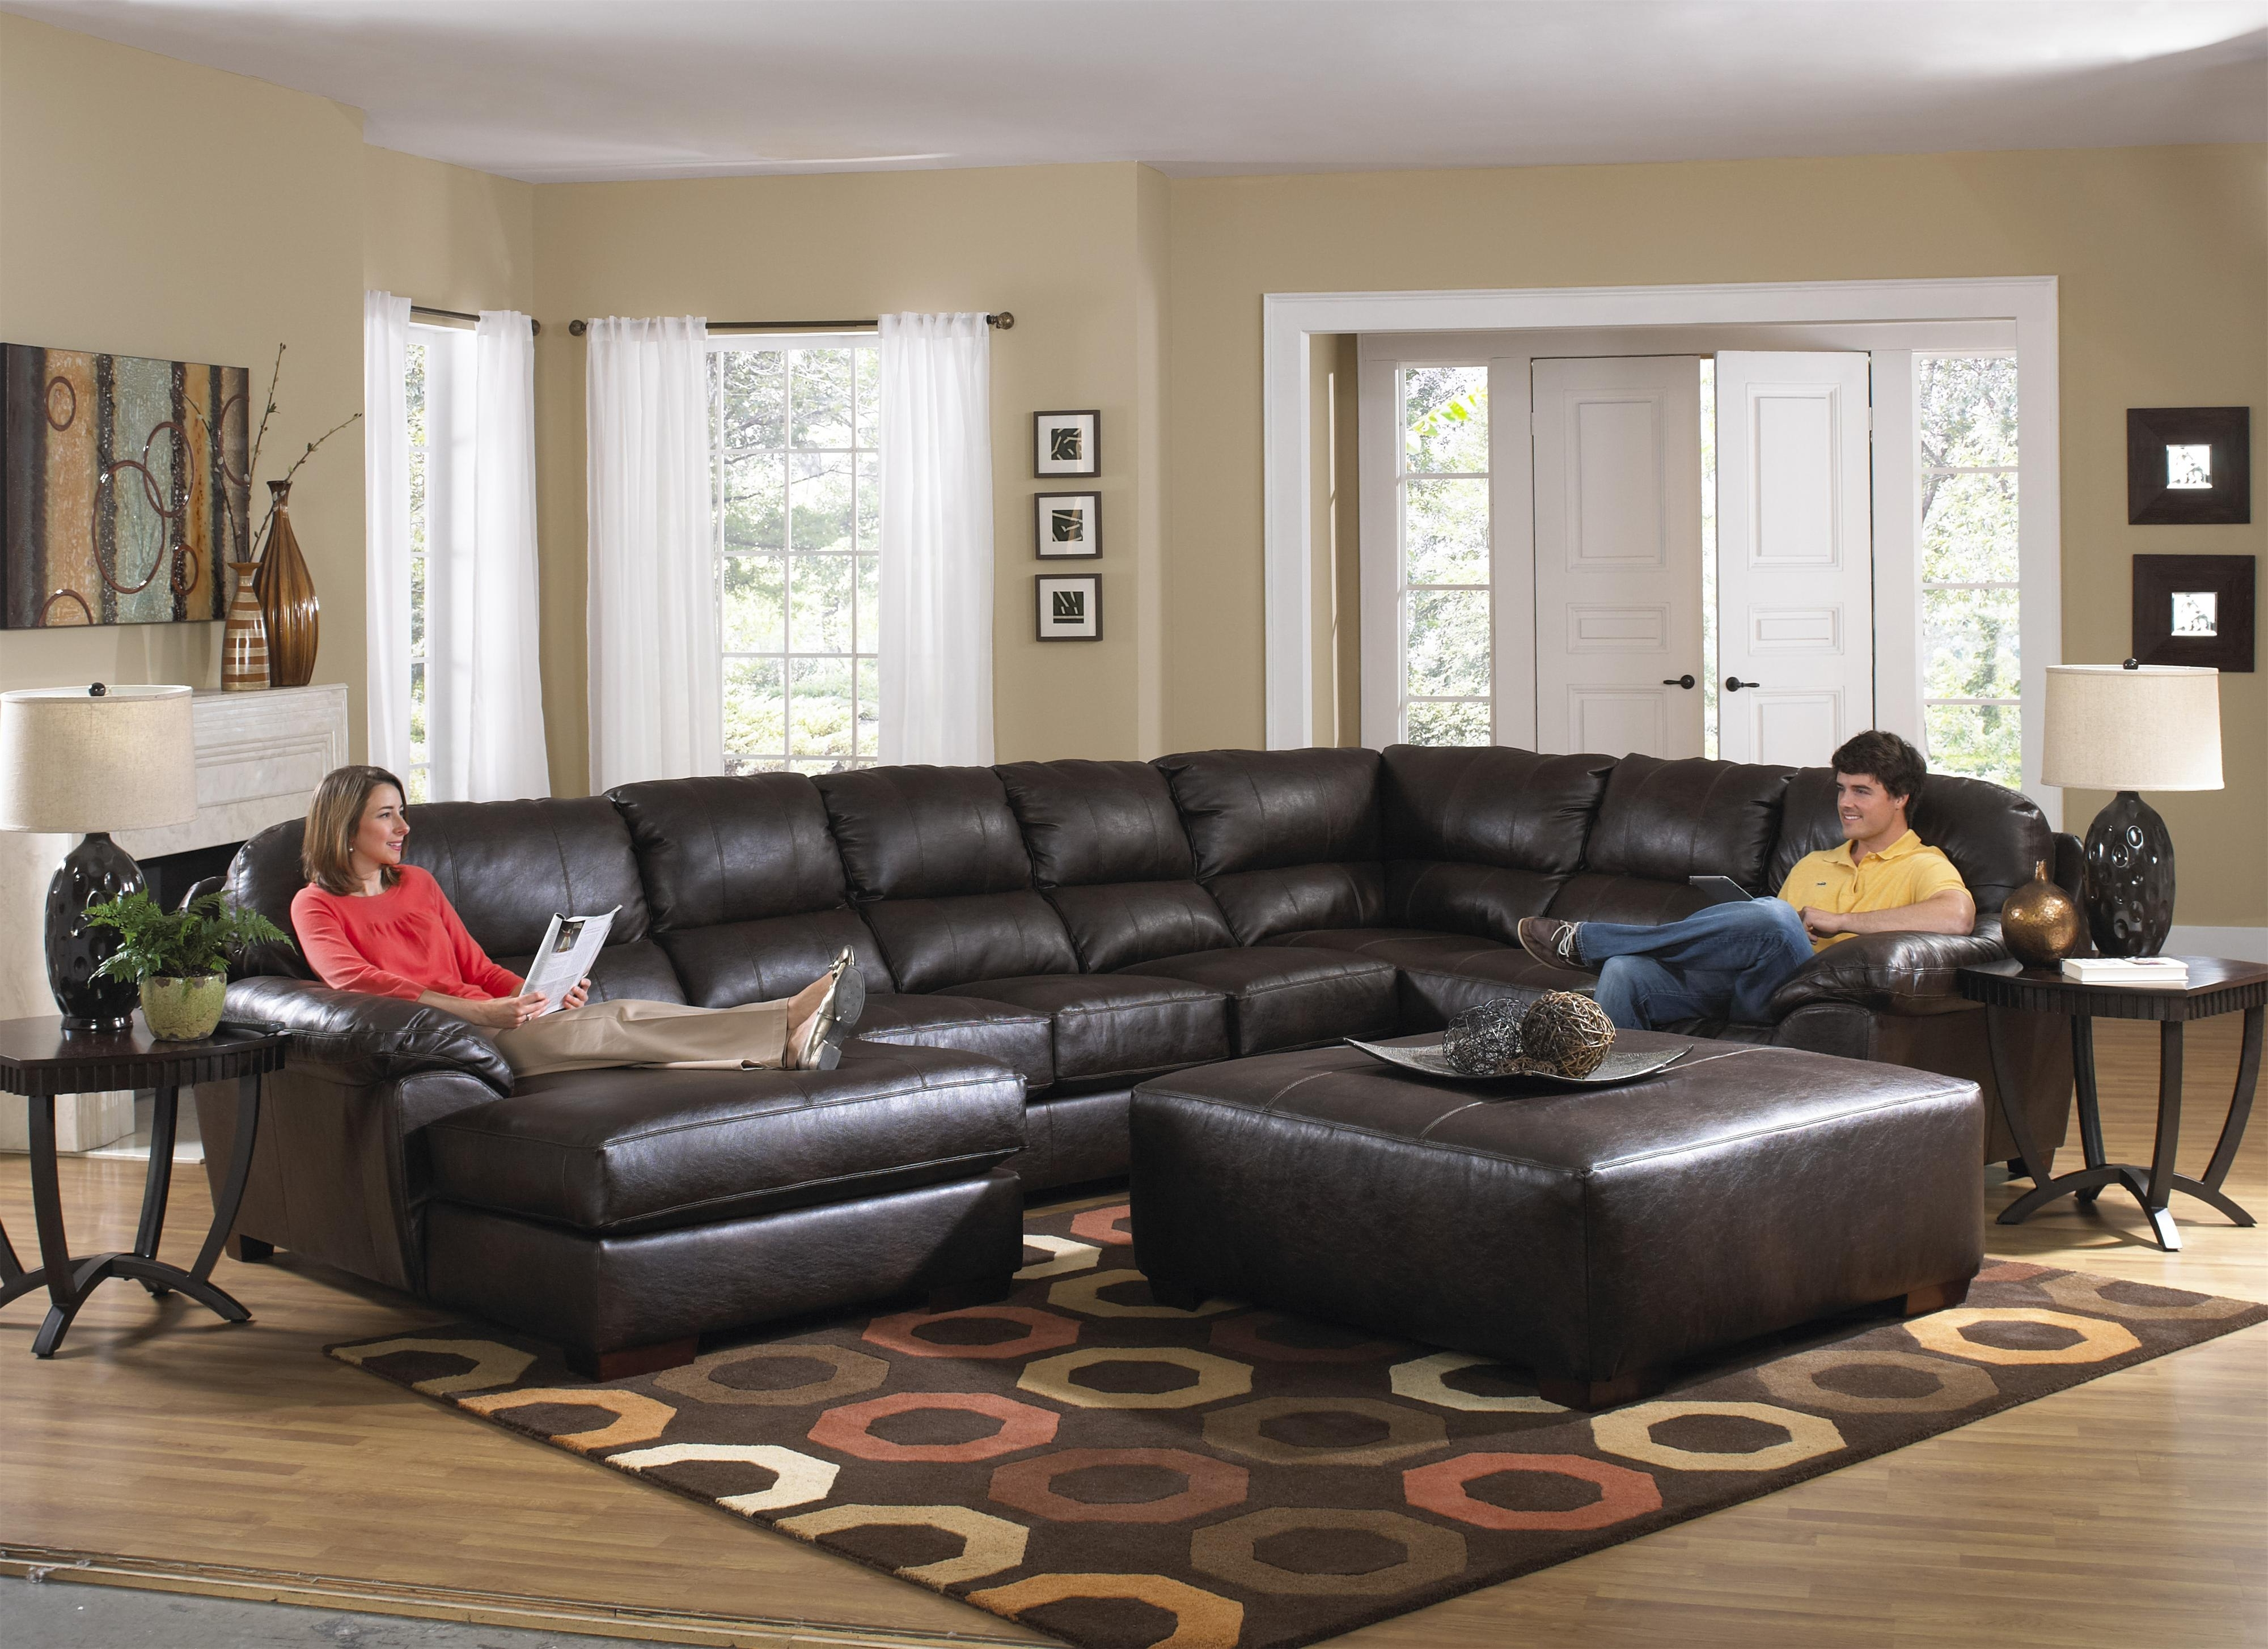 Most Recently Released Sectionals With Ottoman And Chaise Pertaining To Jackson Furniture Lawson Two Chaise Sectional Sofa With Five Total (View 4 of 15)